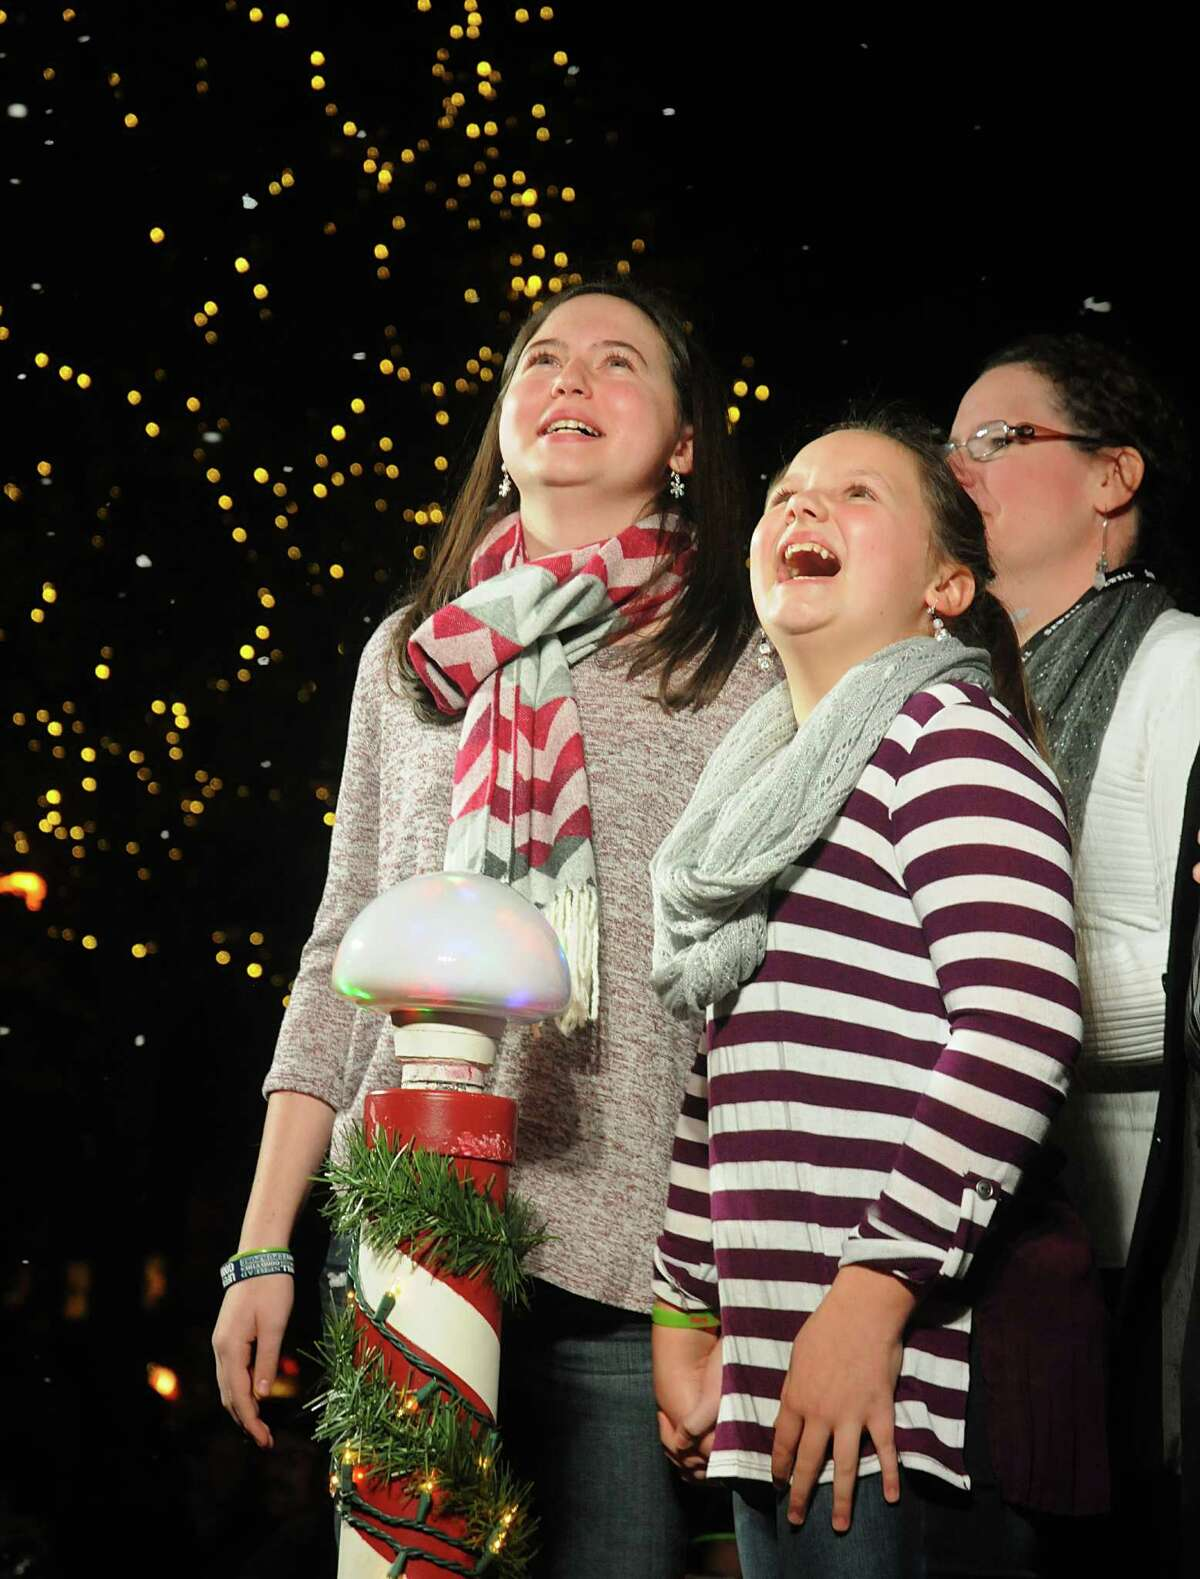 Anna King of The Woodlands, her sister, Lila, and mother Pam admire the 70-foot tall lighted Christmas tree during the Market Street Christmas tree lighting ceremony at Central Park in Market Street. King, a recent heart transplant recipient was the honored guest.